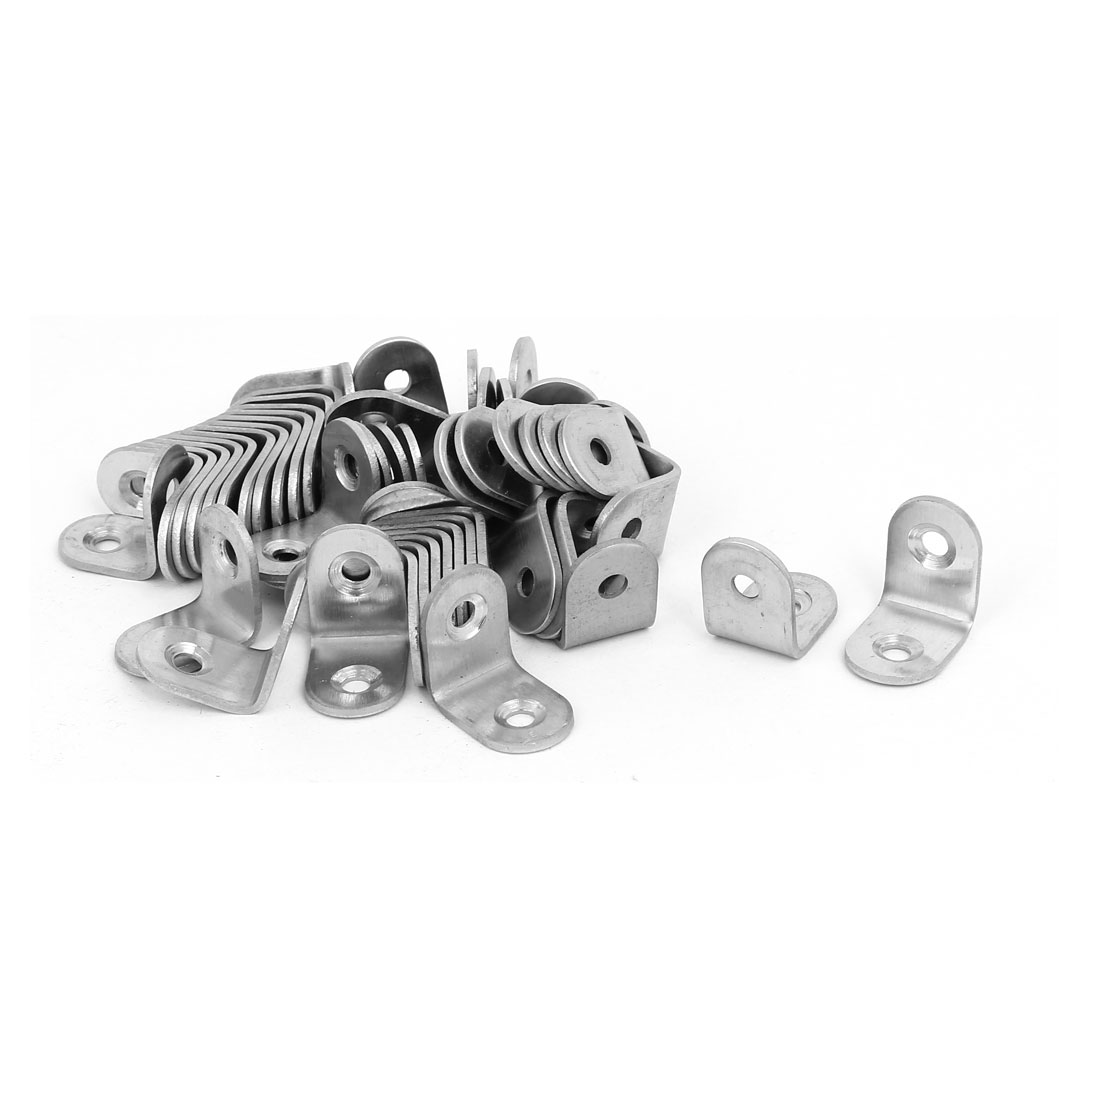 20mm Long Stainless Steel 90 Degree L Shaped Angle Bracket Brace Support 100pcs